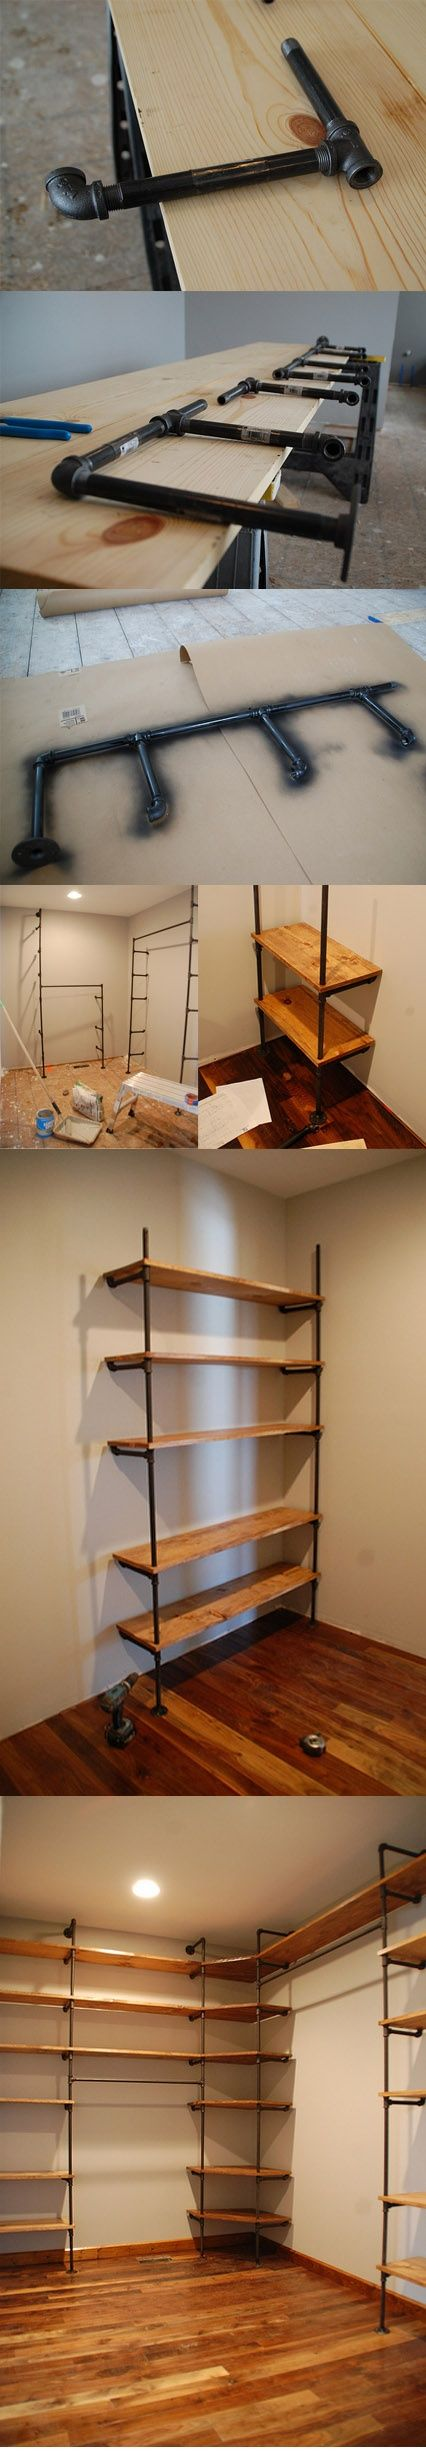 DIY: Piping and wood shelving for closets ♥ would be so great in the attic or basement!!